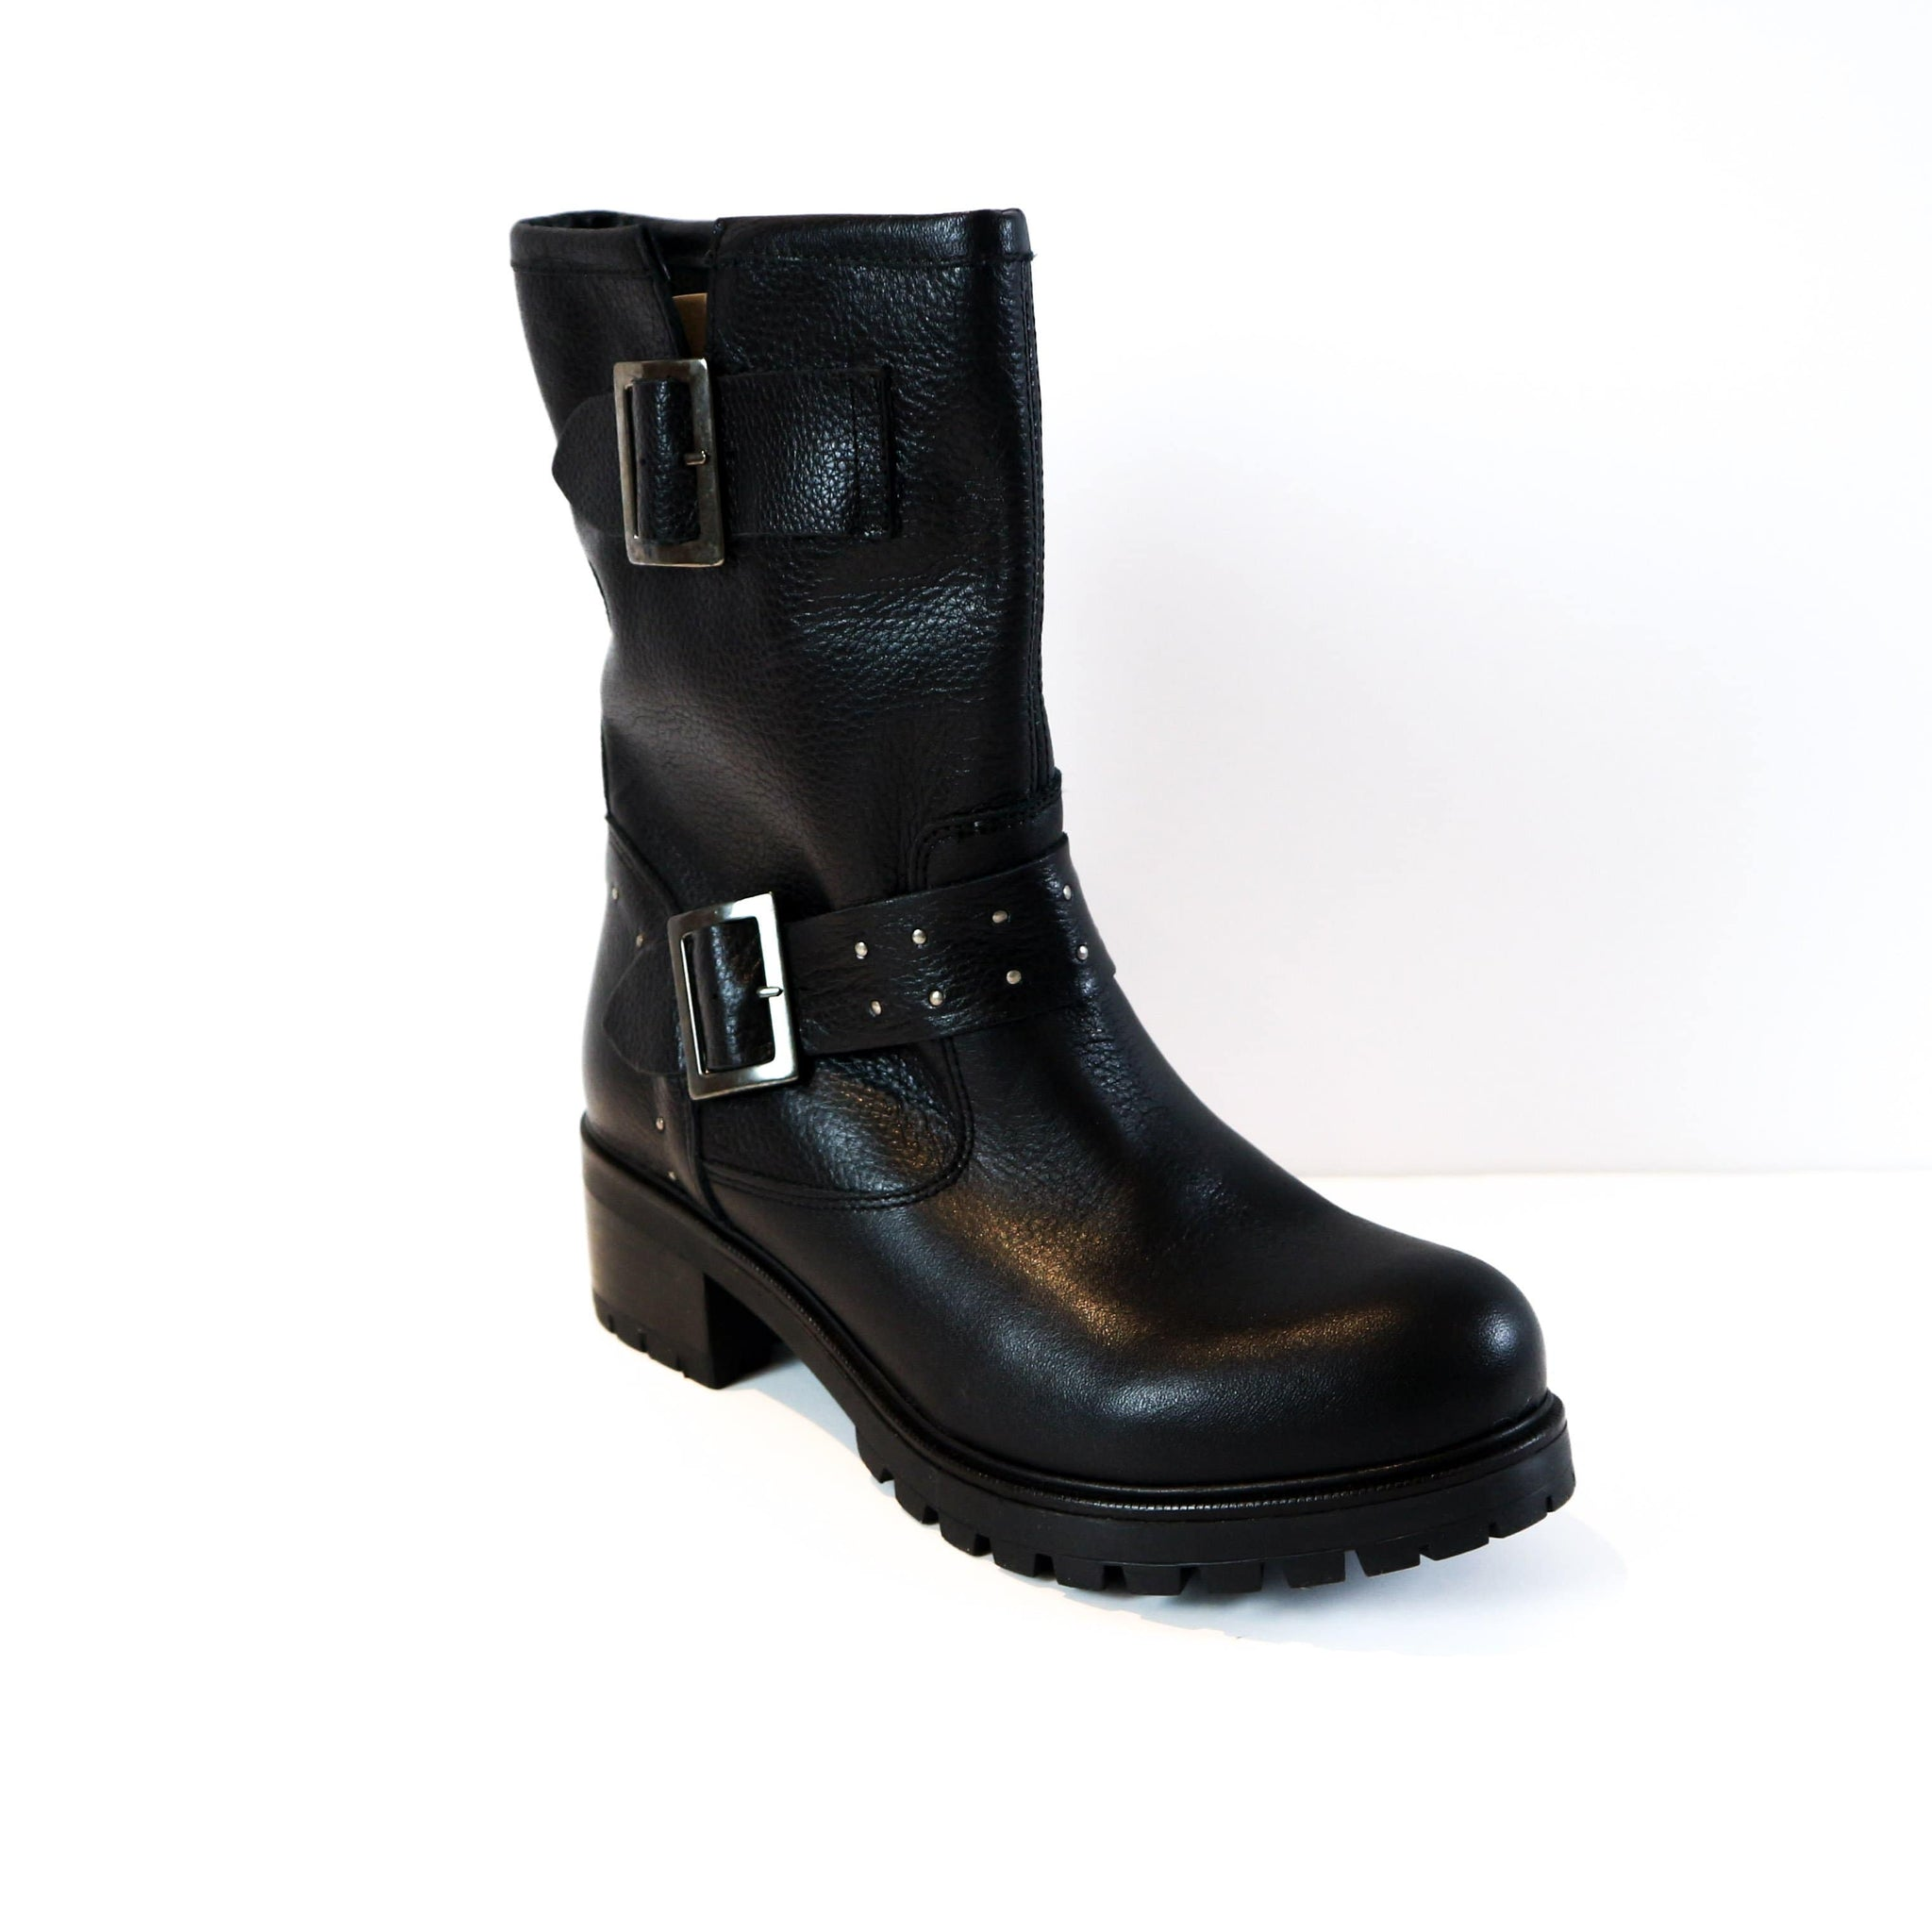 THALIA | Black Buckled Boot - TrystShoes